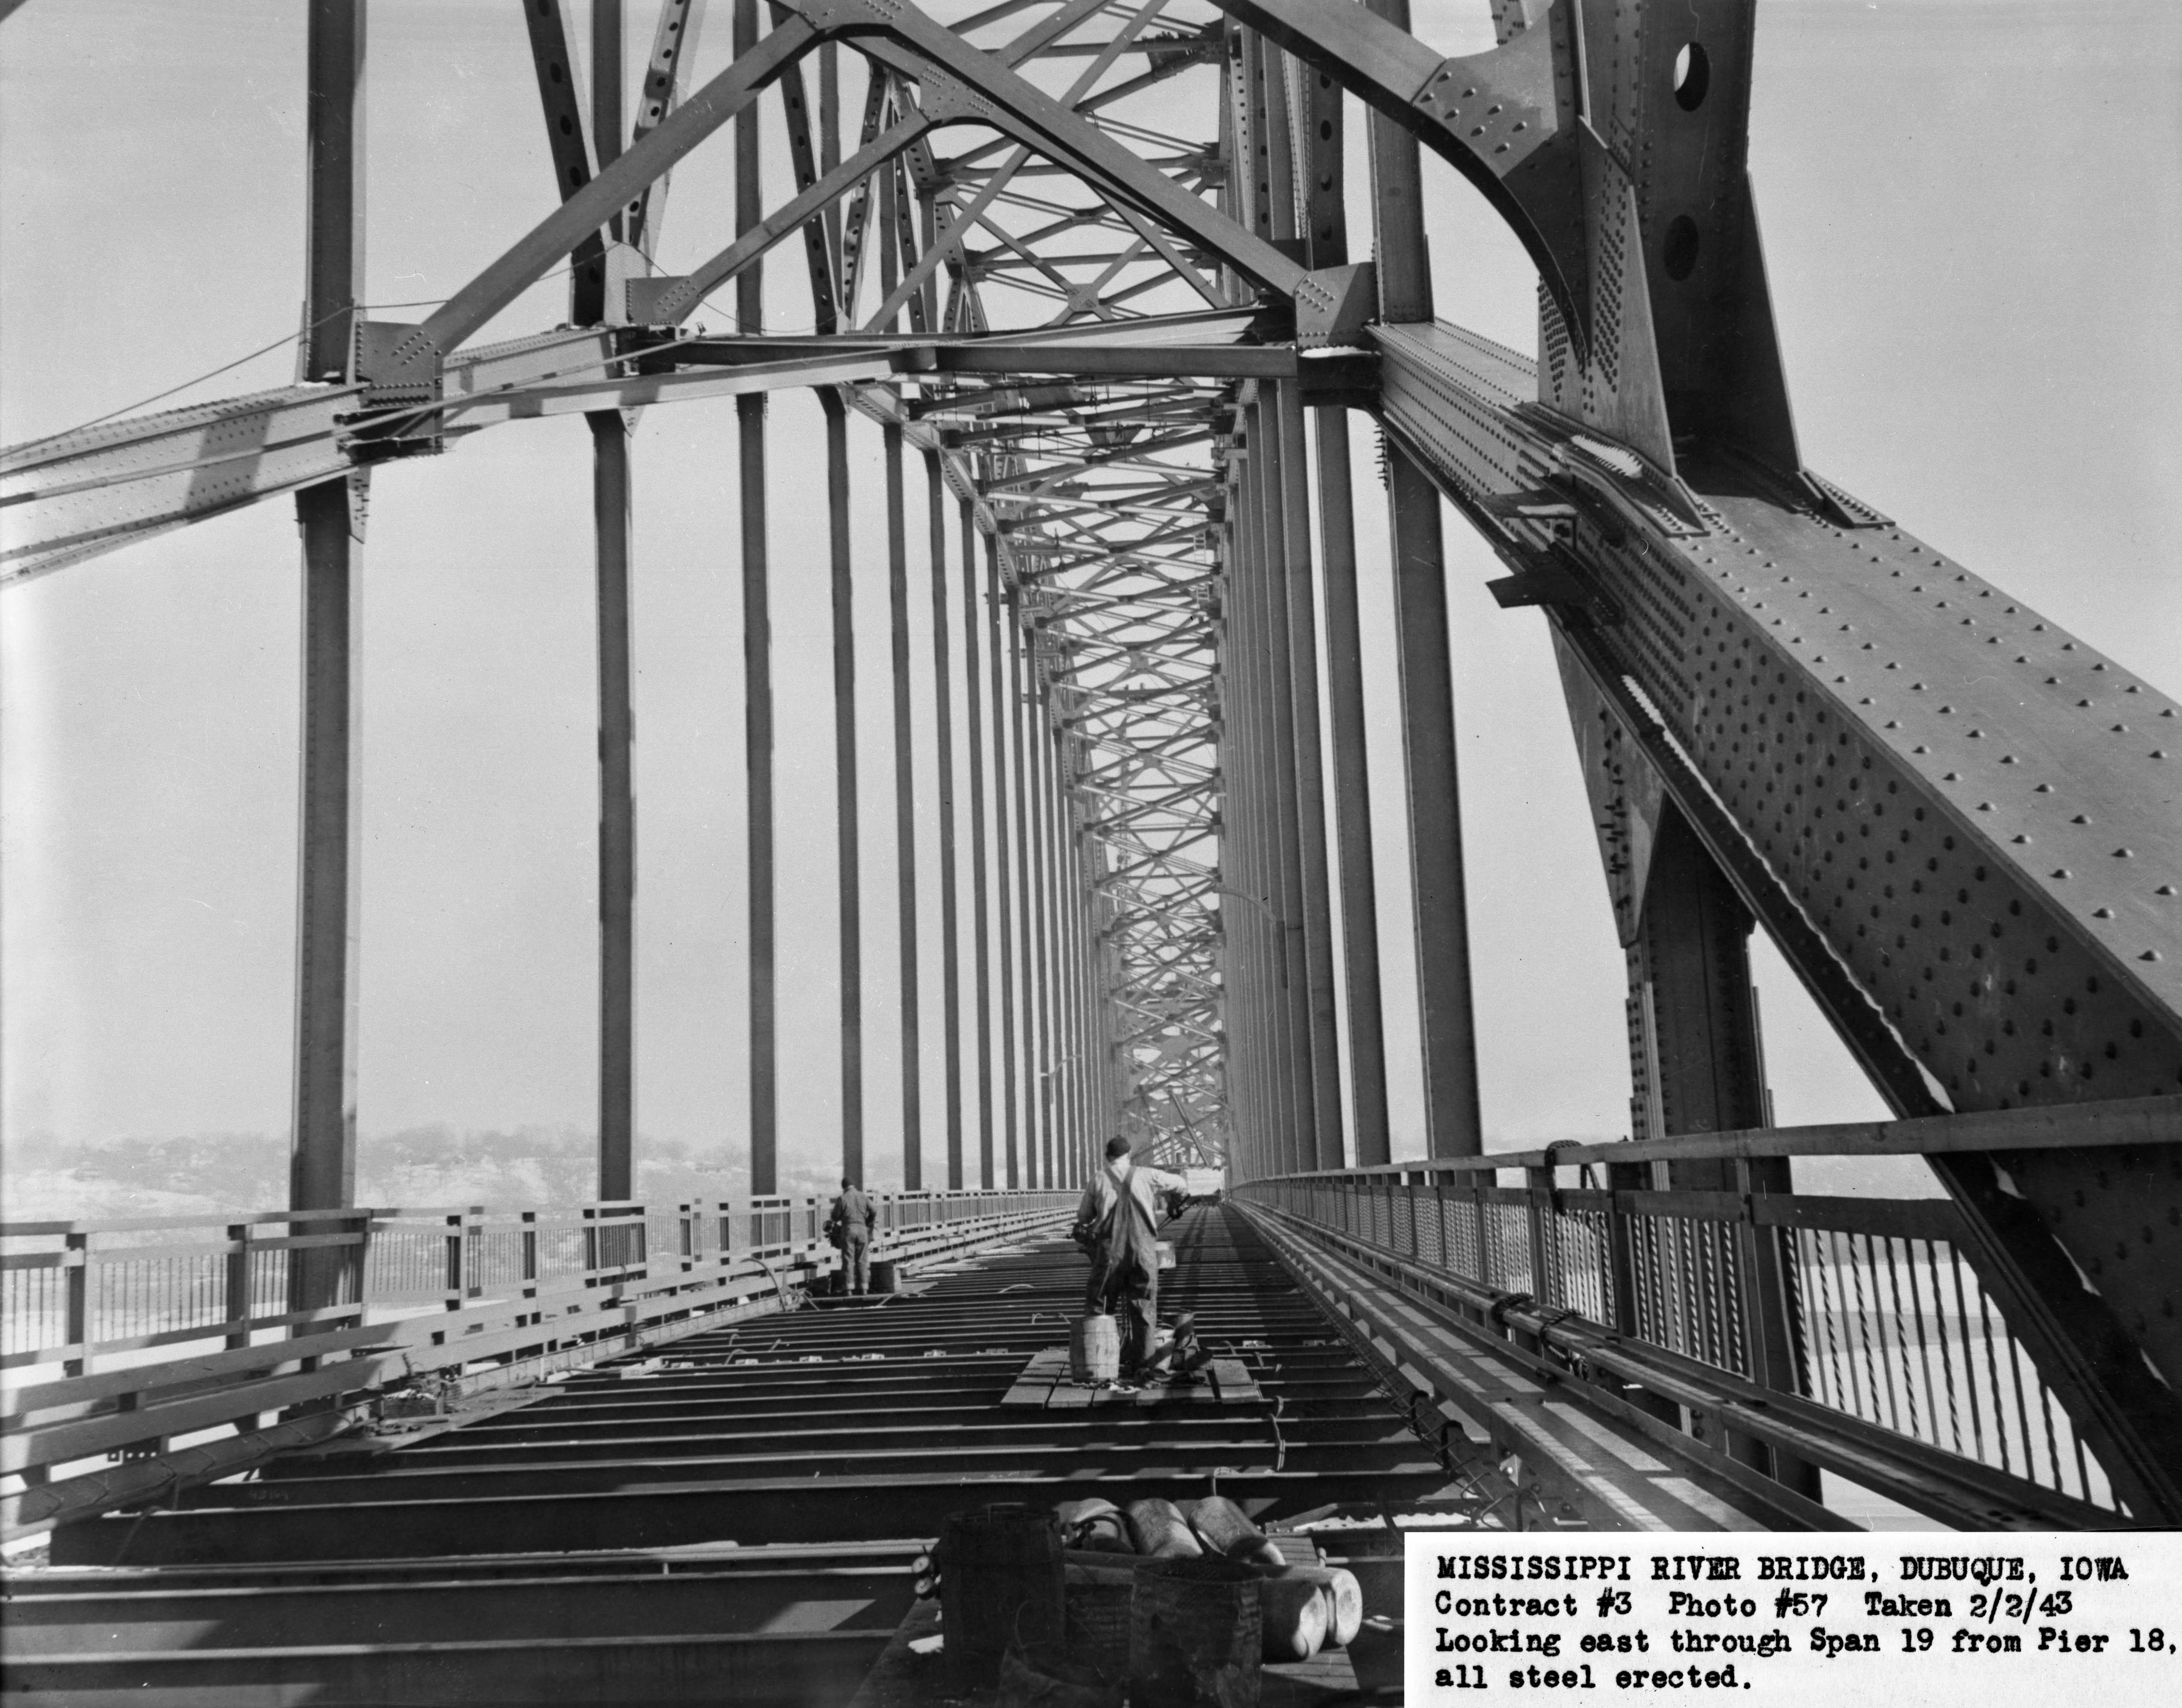 Above: This Photo Shows The Bridge With The Floor Beams In Place, But The  Deck Not Yet Constructed.